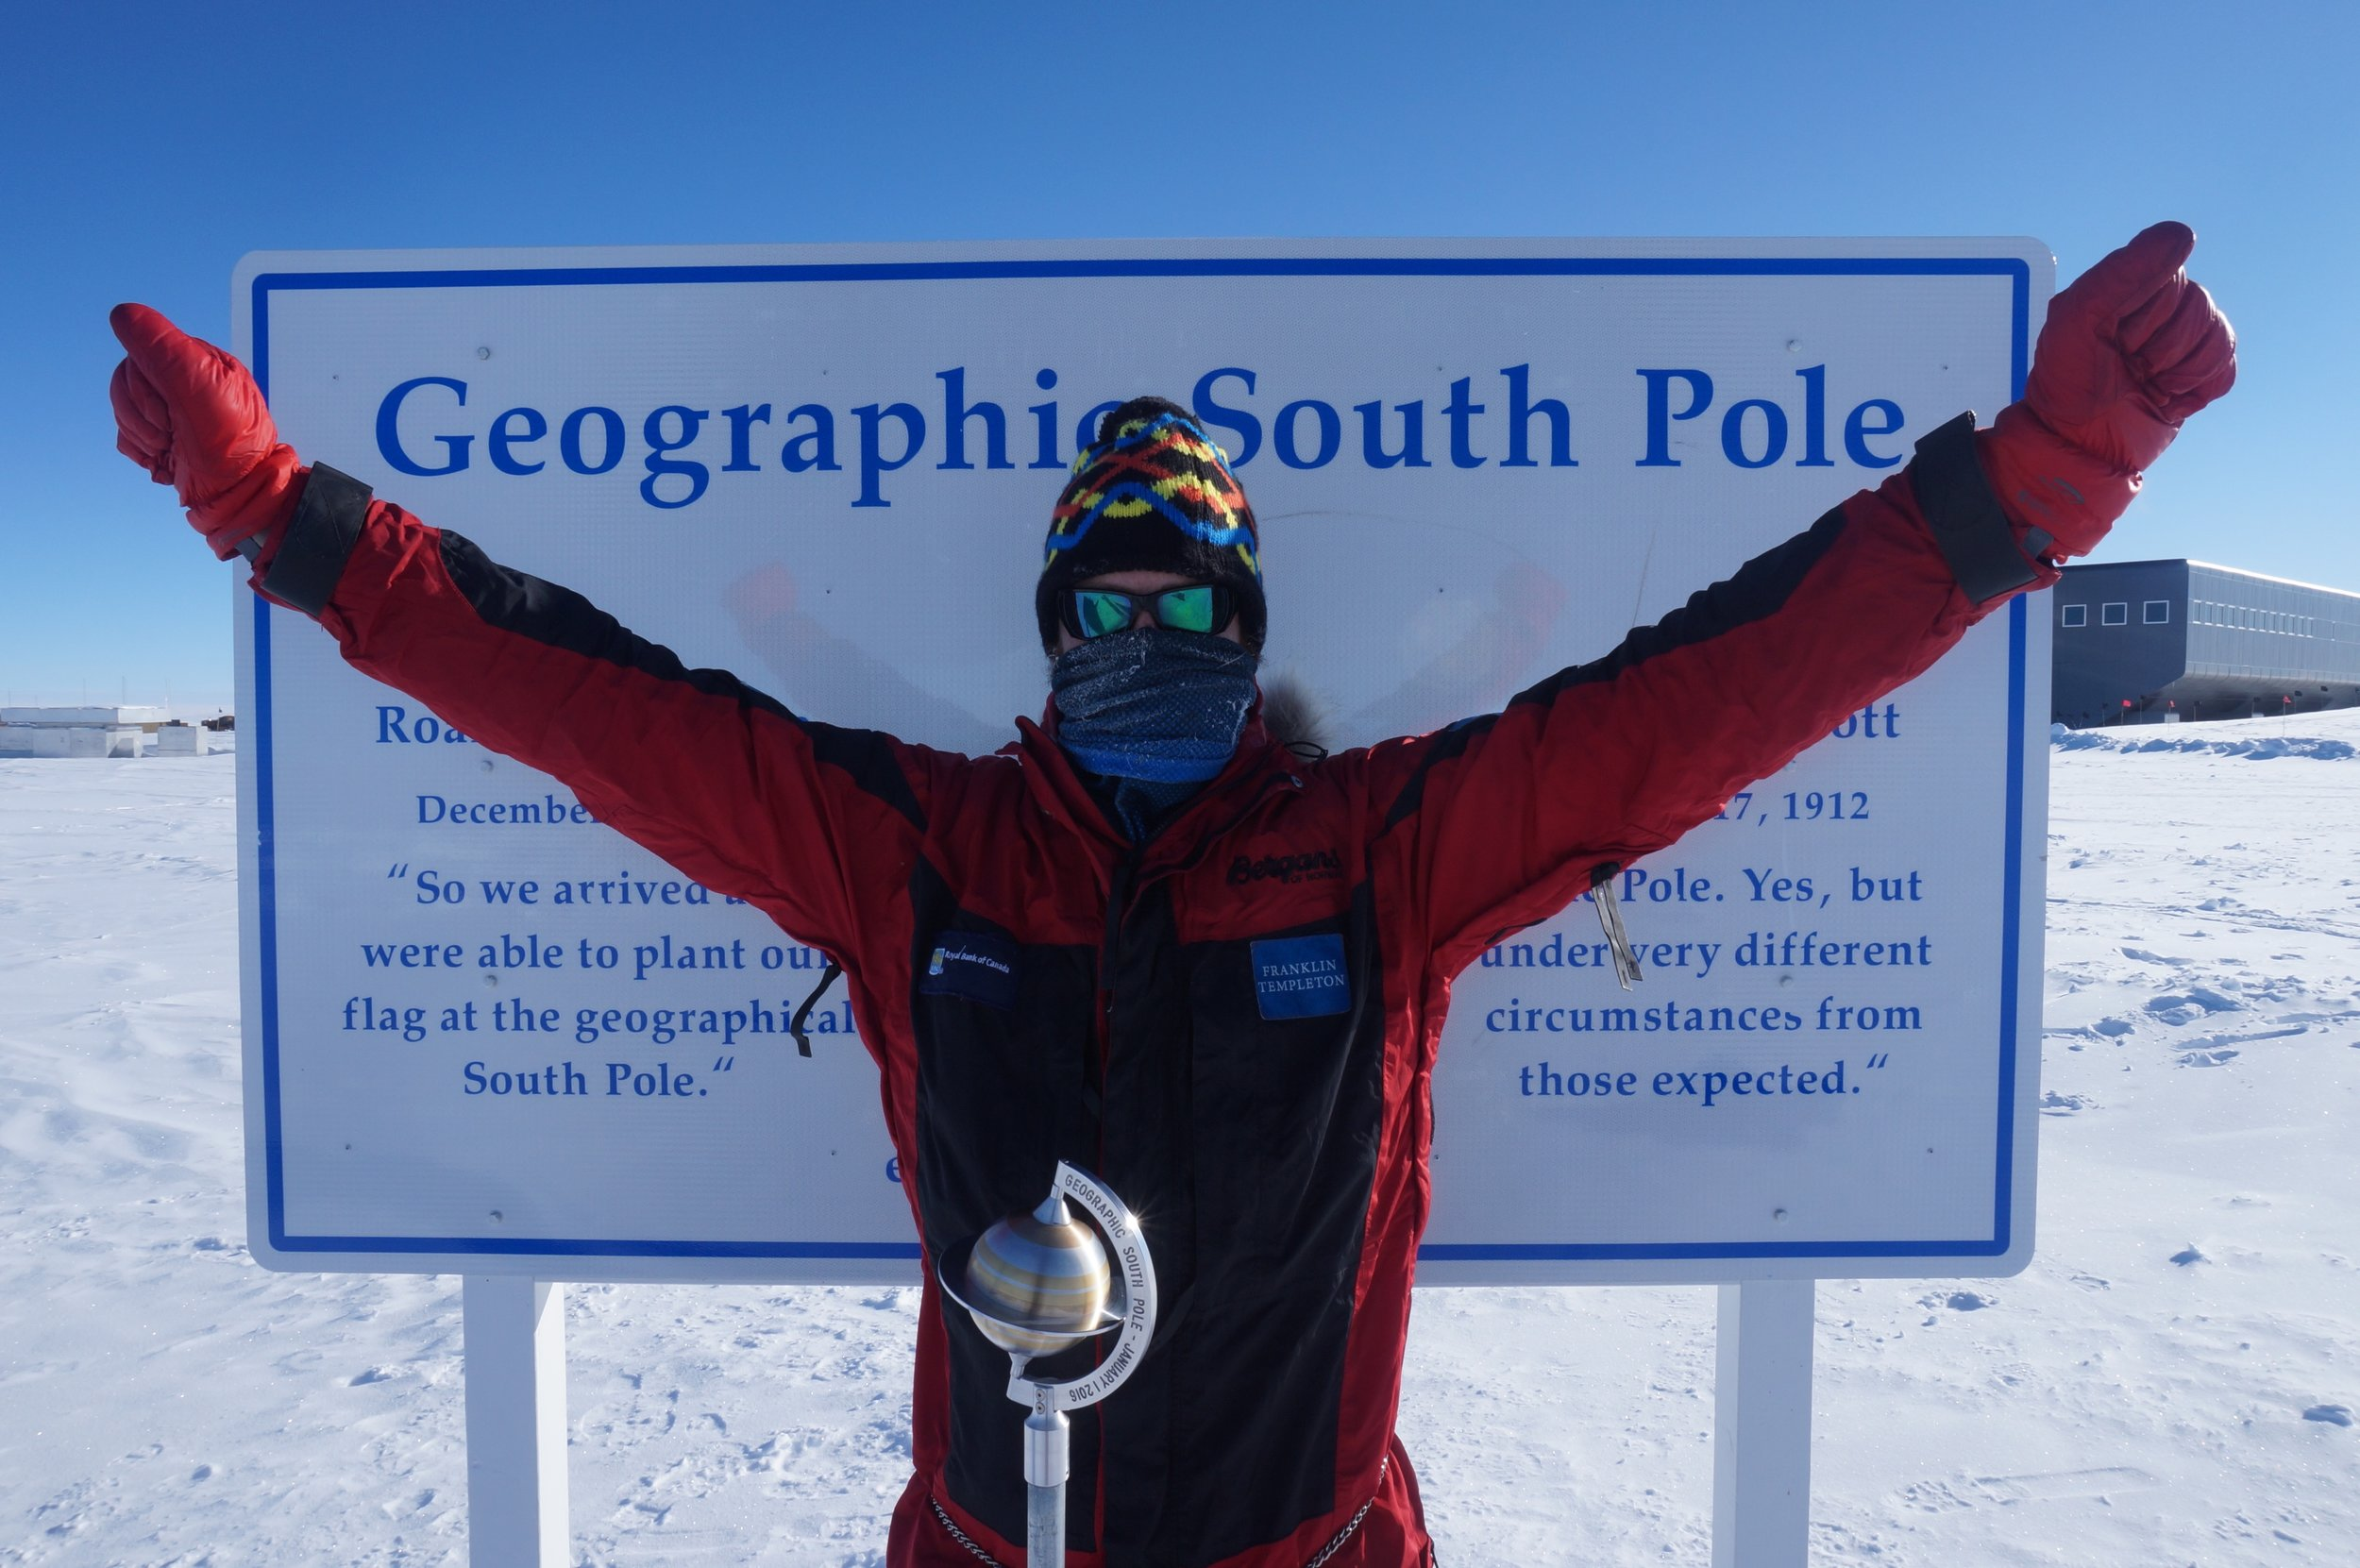 Due South: Antarctica   - Click here to see the Due South: Antarctica expedition info pageOn January 13th 2016, after skiing completely solo, unassisted and unsupported for 39 days and 8 hours, Luke reached the bottom of the world, the South Pole. He had just become the first Scot, the Youngest Brit and the second youngest in history to achieve this feat. When Luke arrived at 90° South, he had skied over 730 miles (1175km), for 40 consecutive days, whilst climbing from sea level to a height of 9,000ft (c.2800m). He had just successfully completed an expedition and a challenge that less than 20 people in history have achieved.